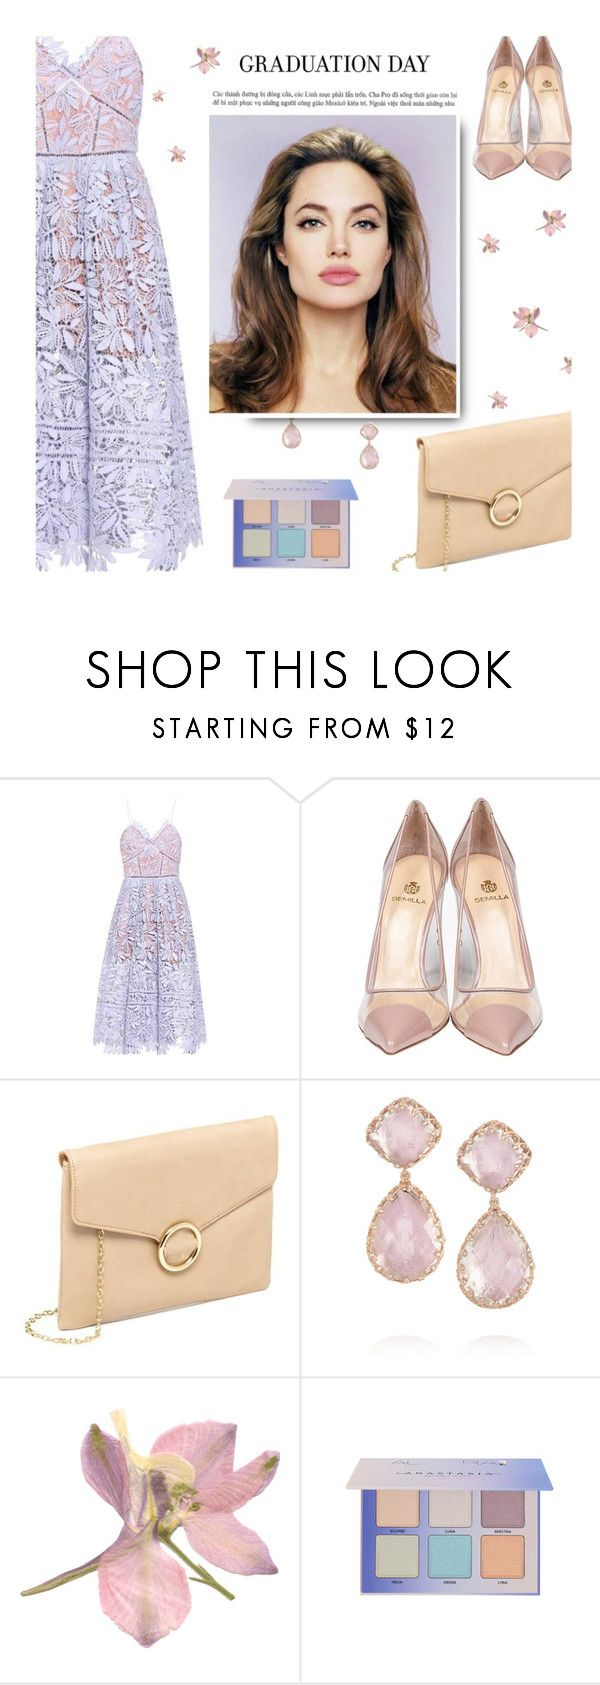 """graduation"" by uncharged-batteries ❤ liked on Polyvore featuring self-portrait, Semilla and Larkspur & Hawk"